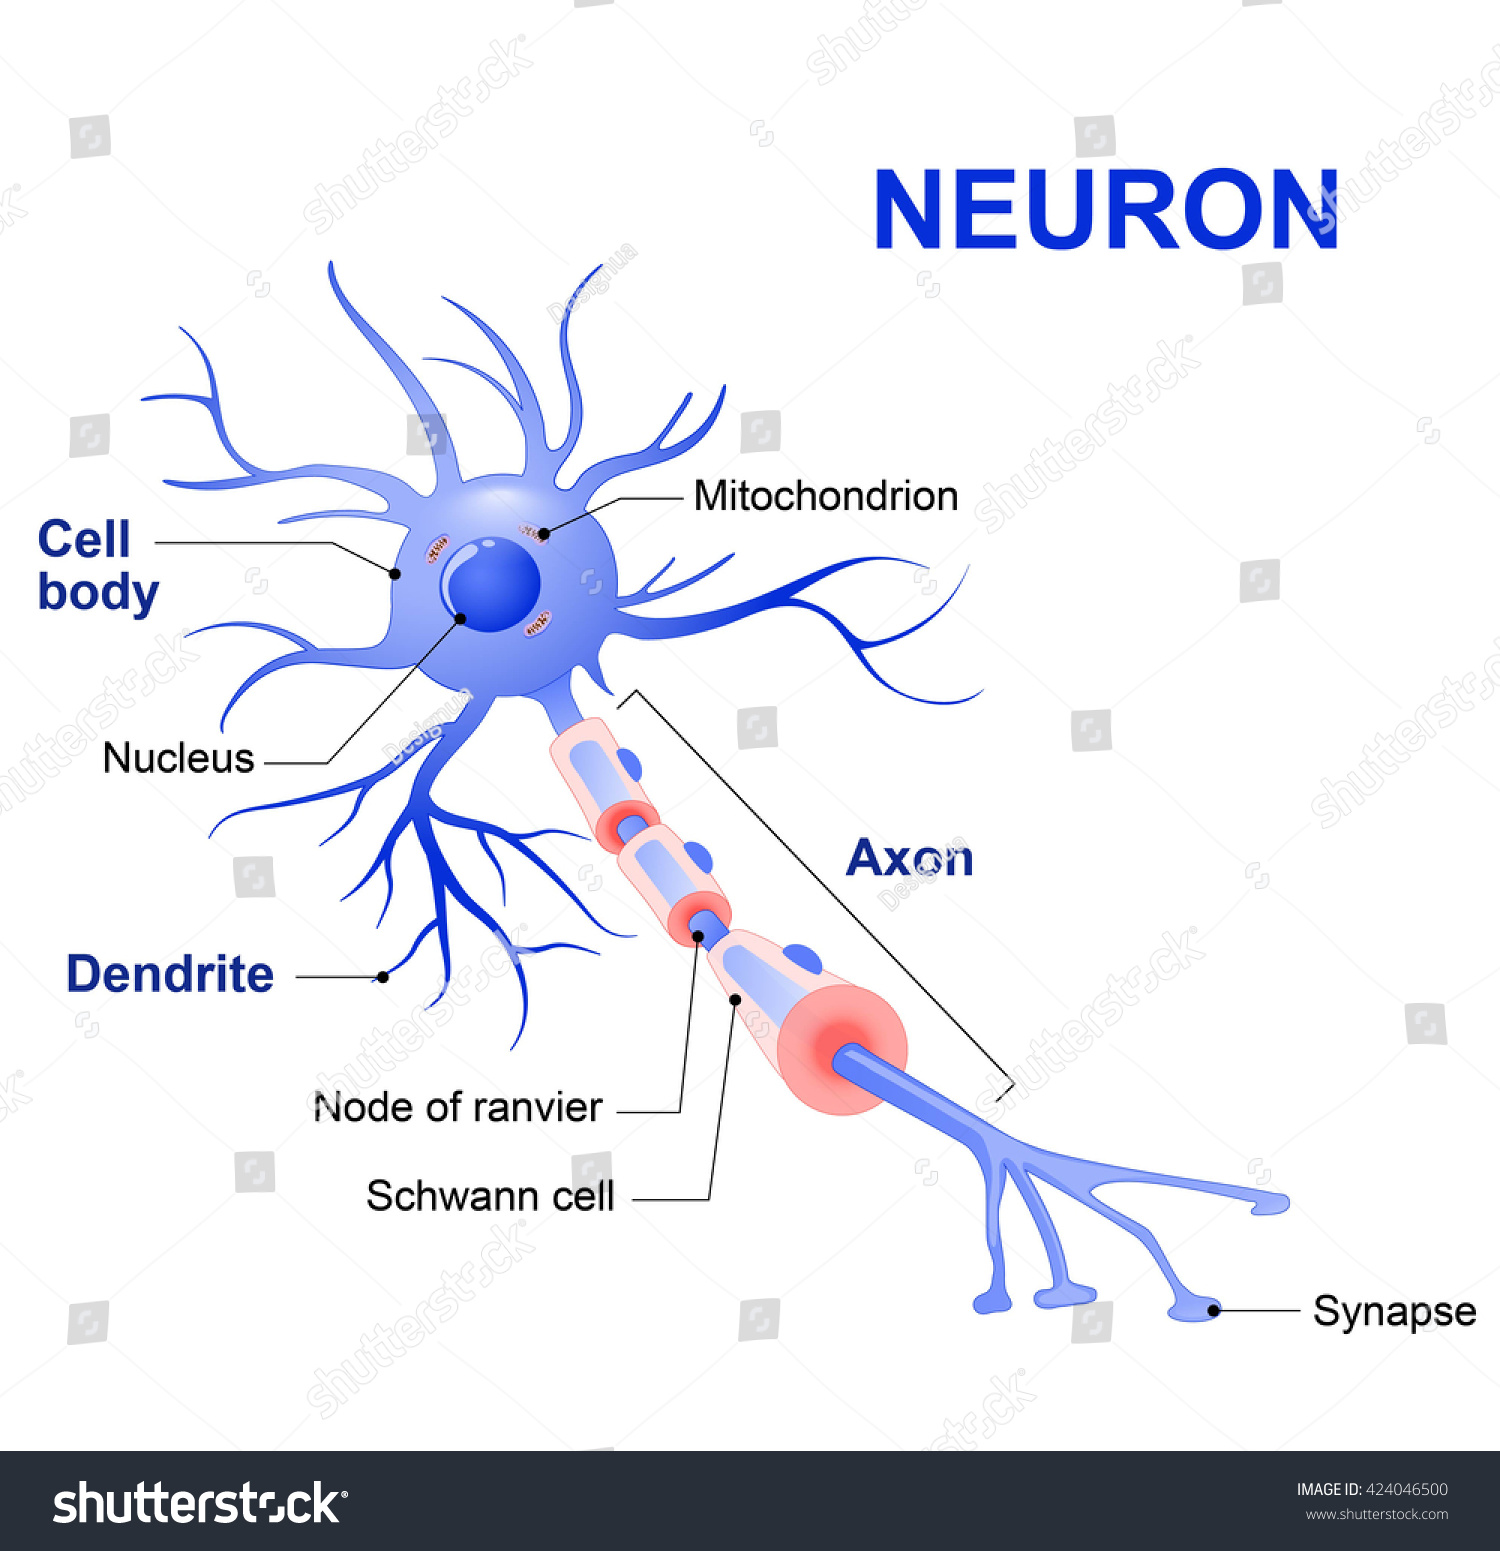 Anatomy Typical Human Neuron Stock Vector 424046500 - Shutterstock